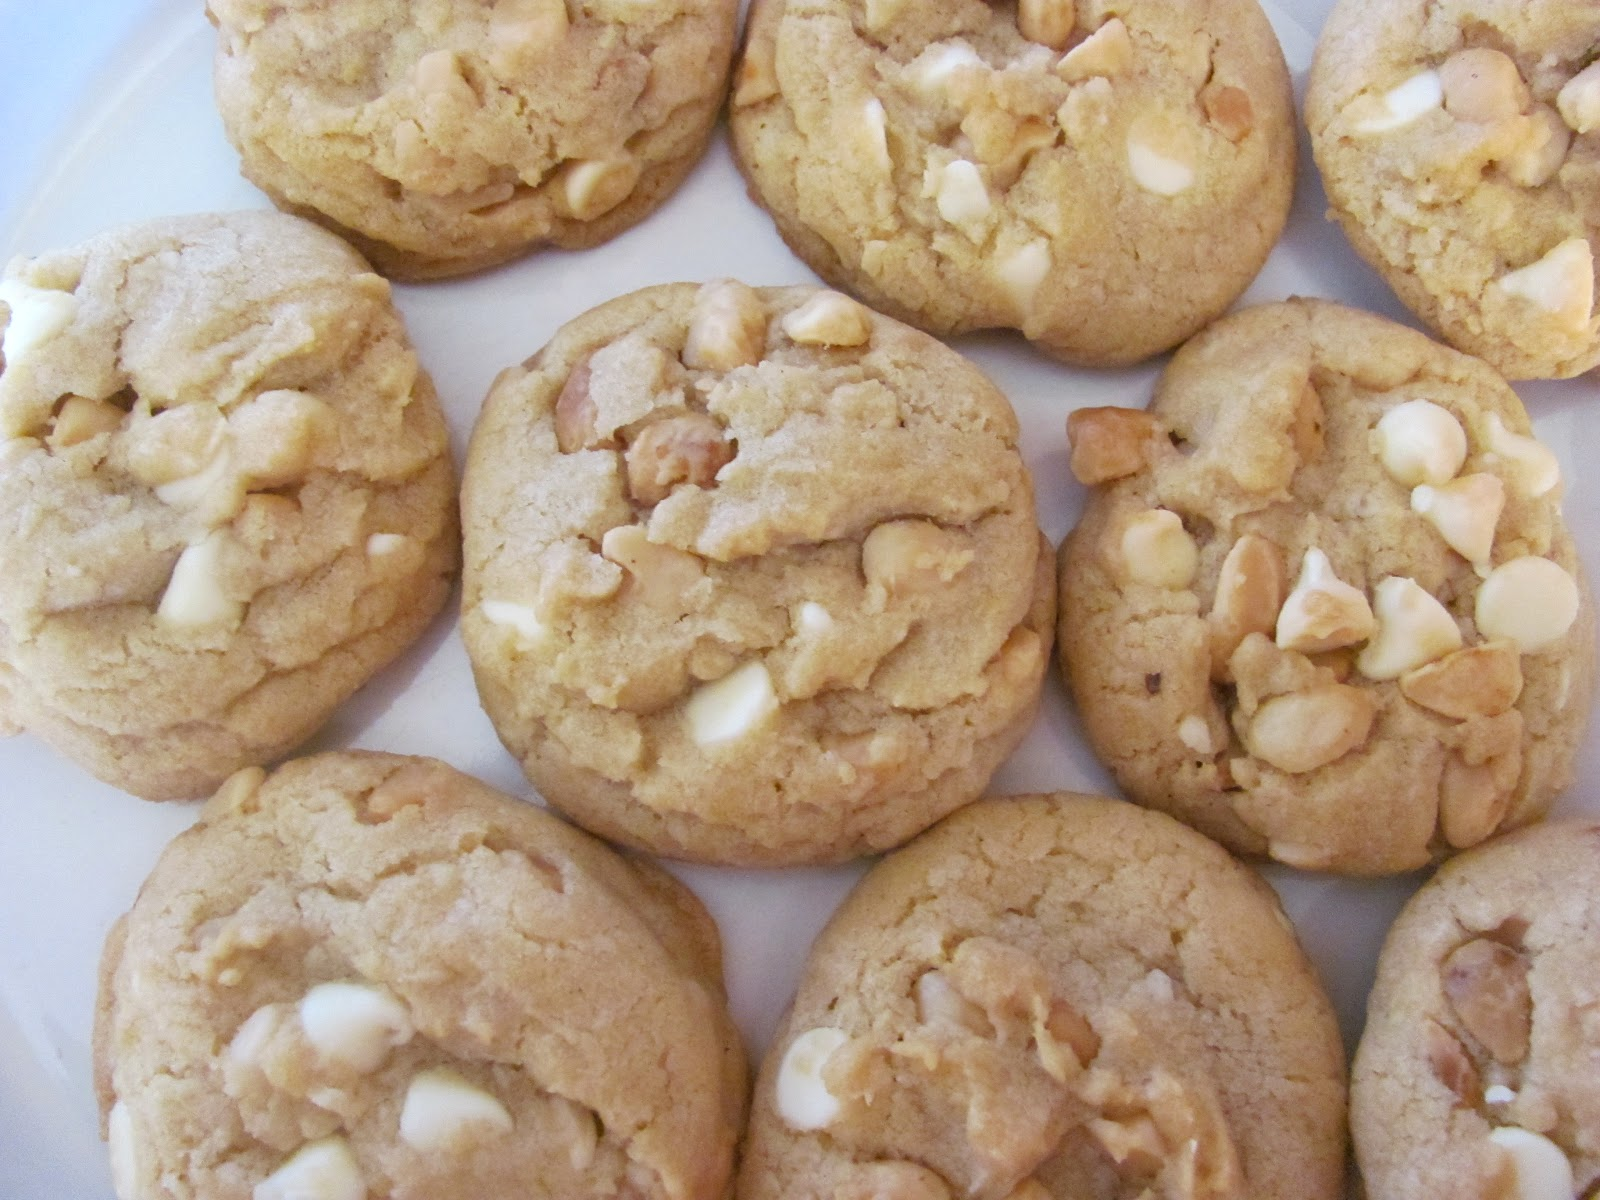 Creating Nirvana: Easy White Chocolate Macadamia Nut Cookies